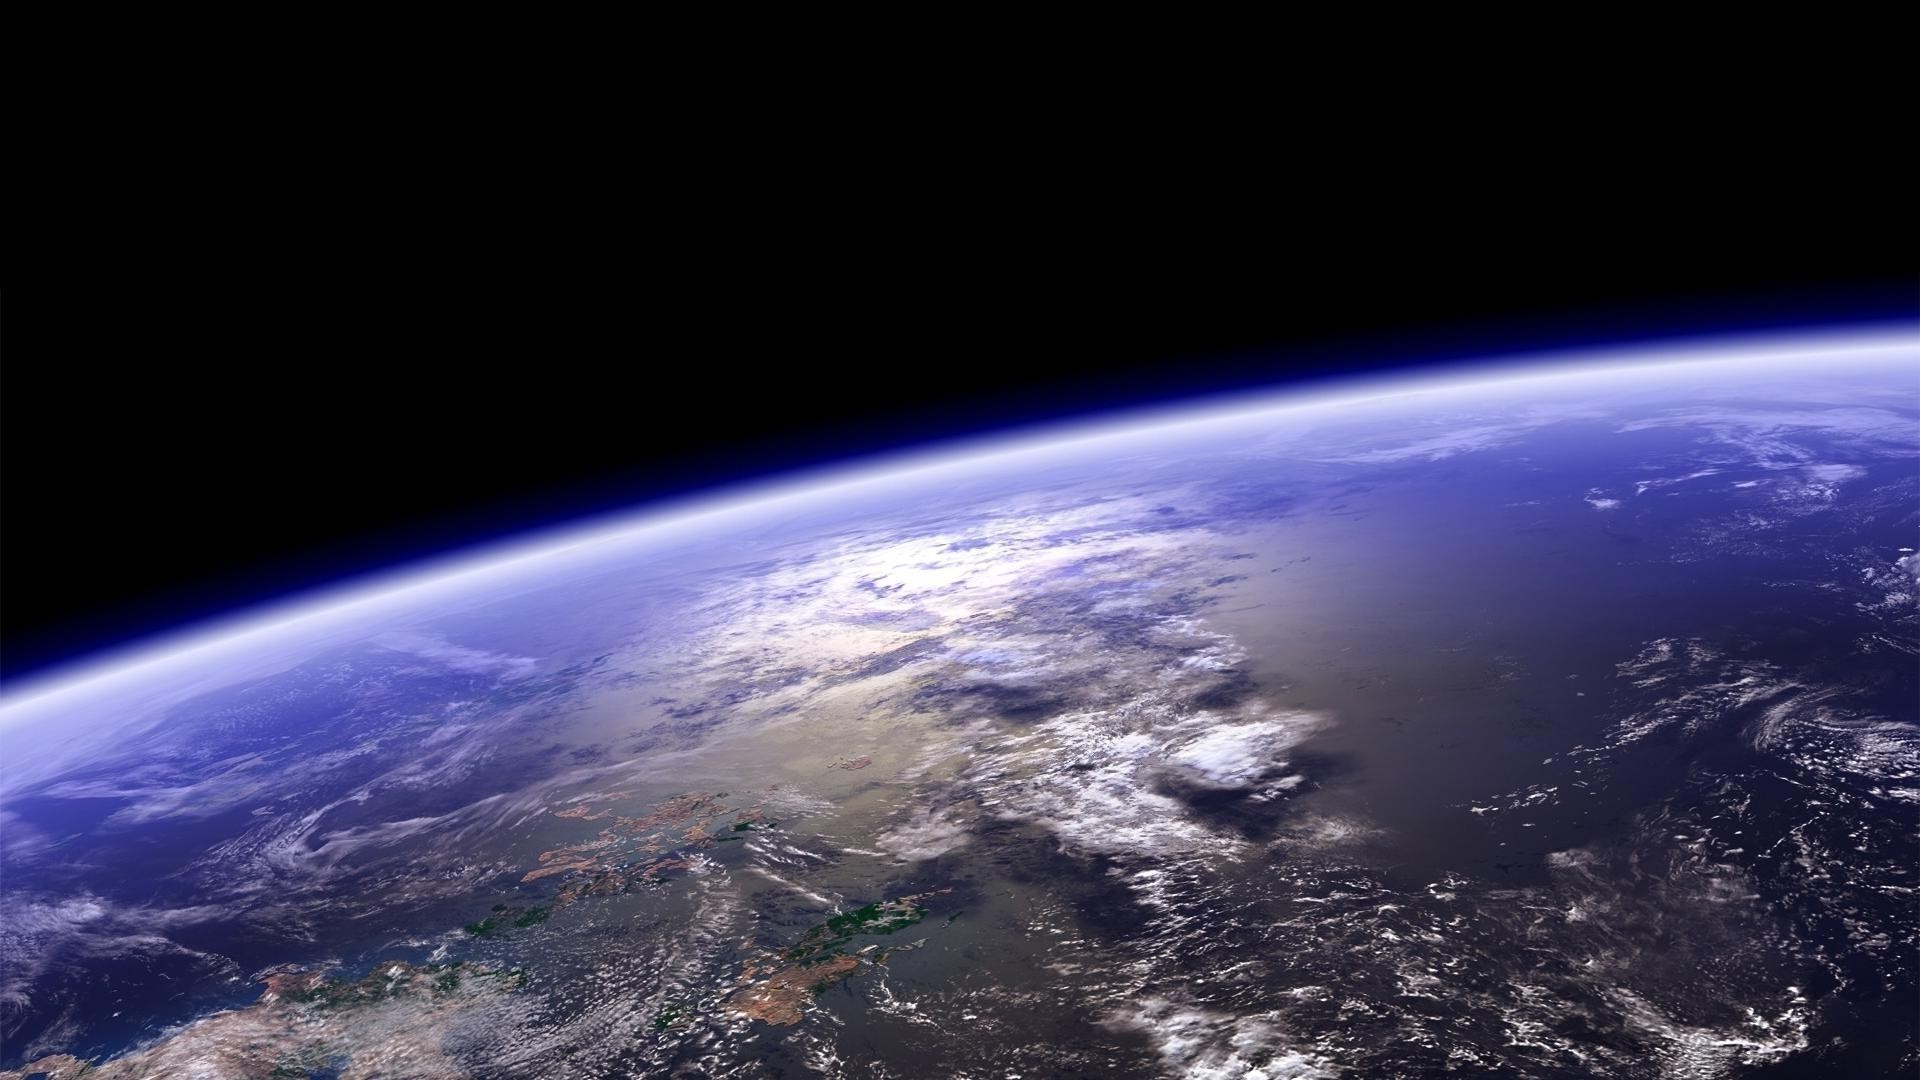 the views of earth from space planet astronomy moon atmosphere space sky light galaxy travel ball-shaped exploration sun science ocean nature water landscape dark fiction